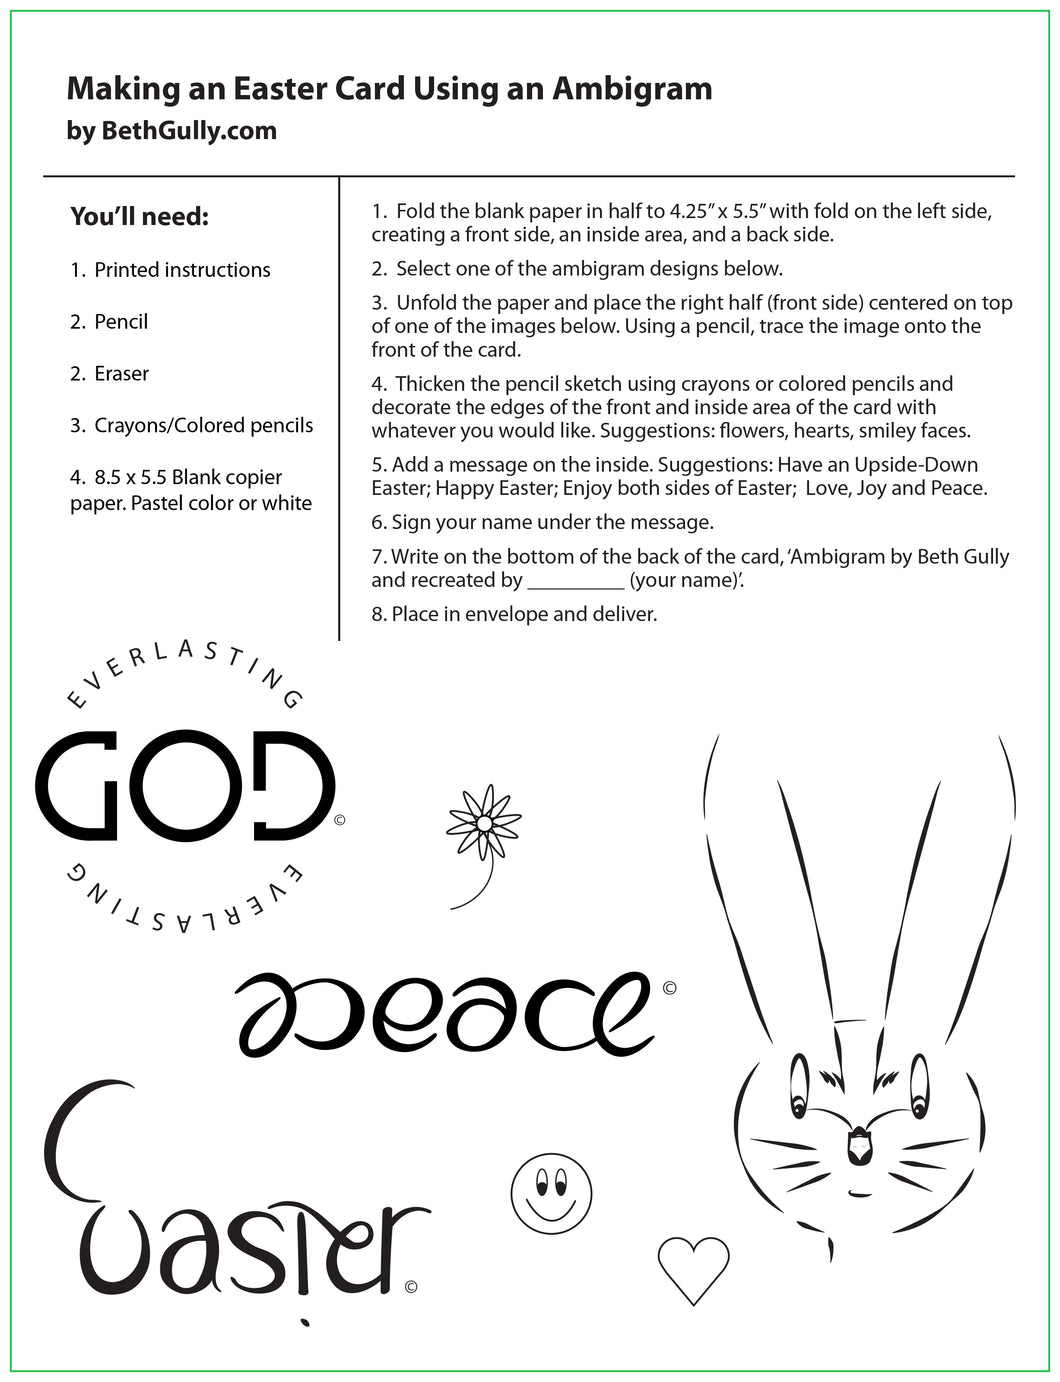 Making an Ambigram Easter Card Worksheet